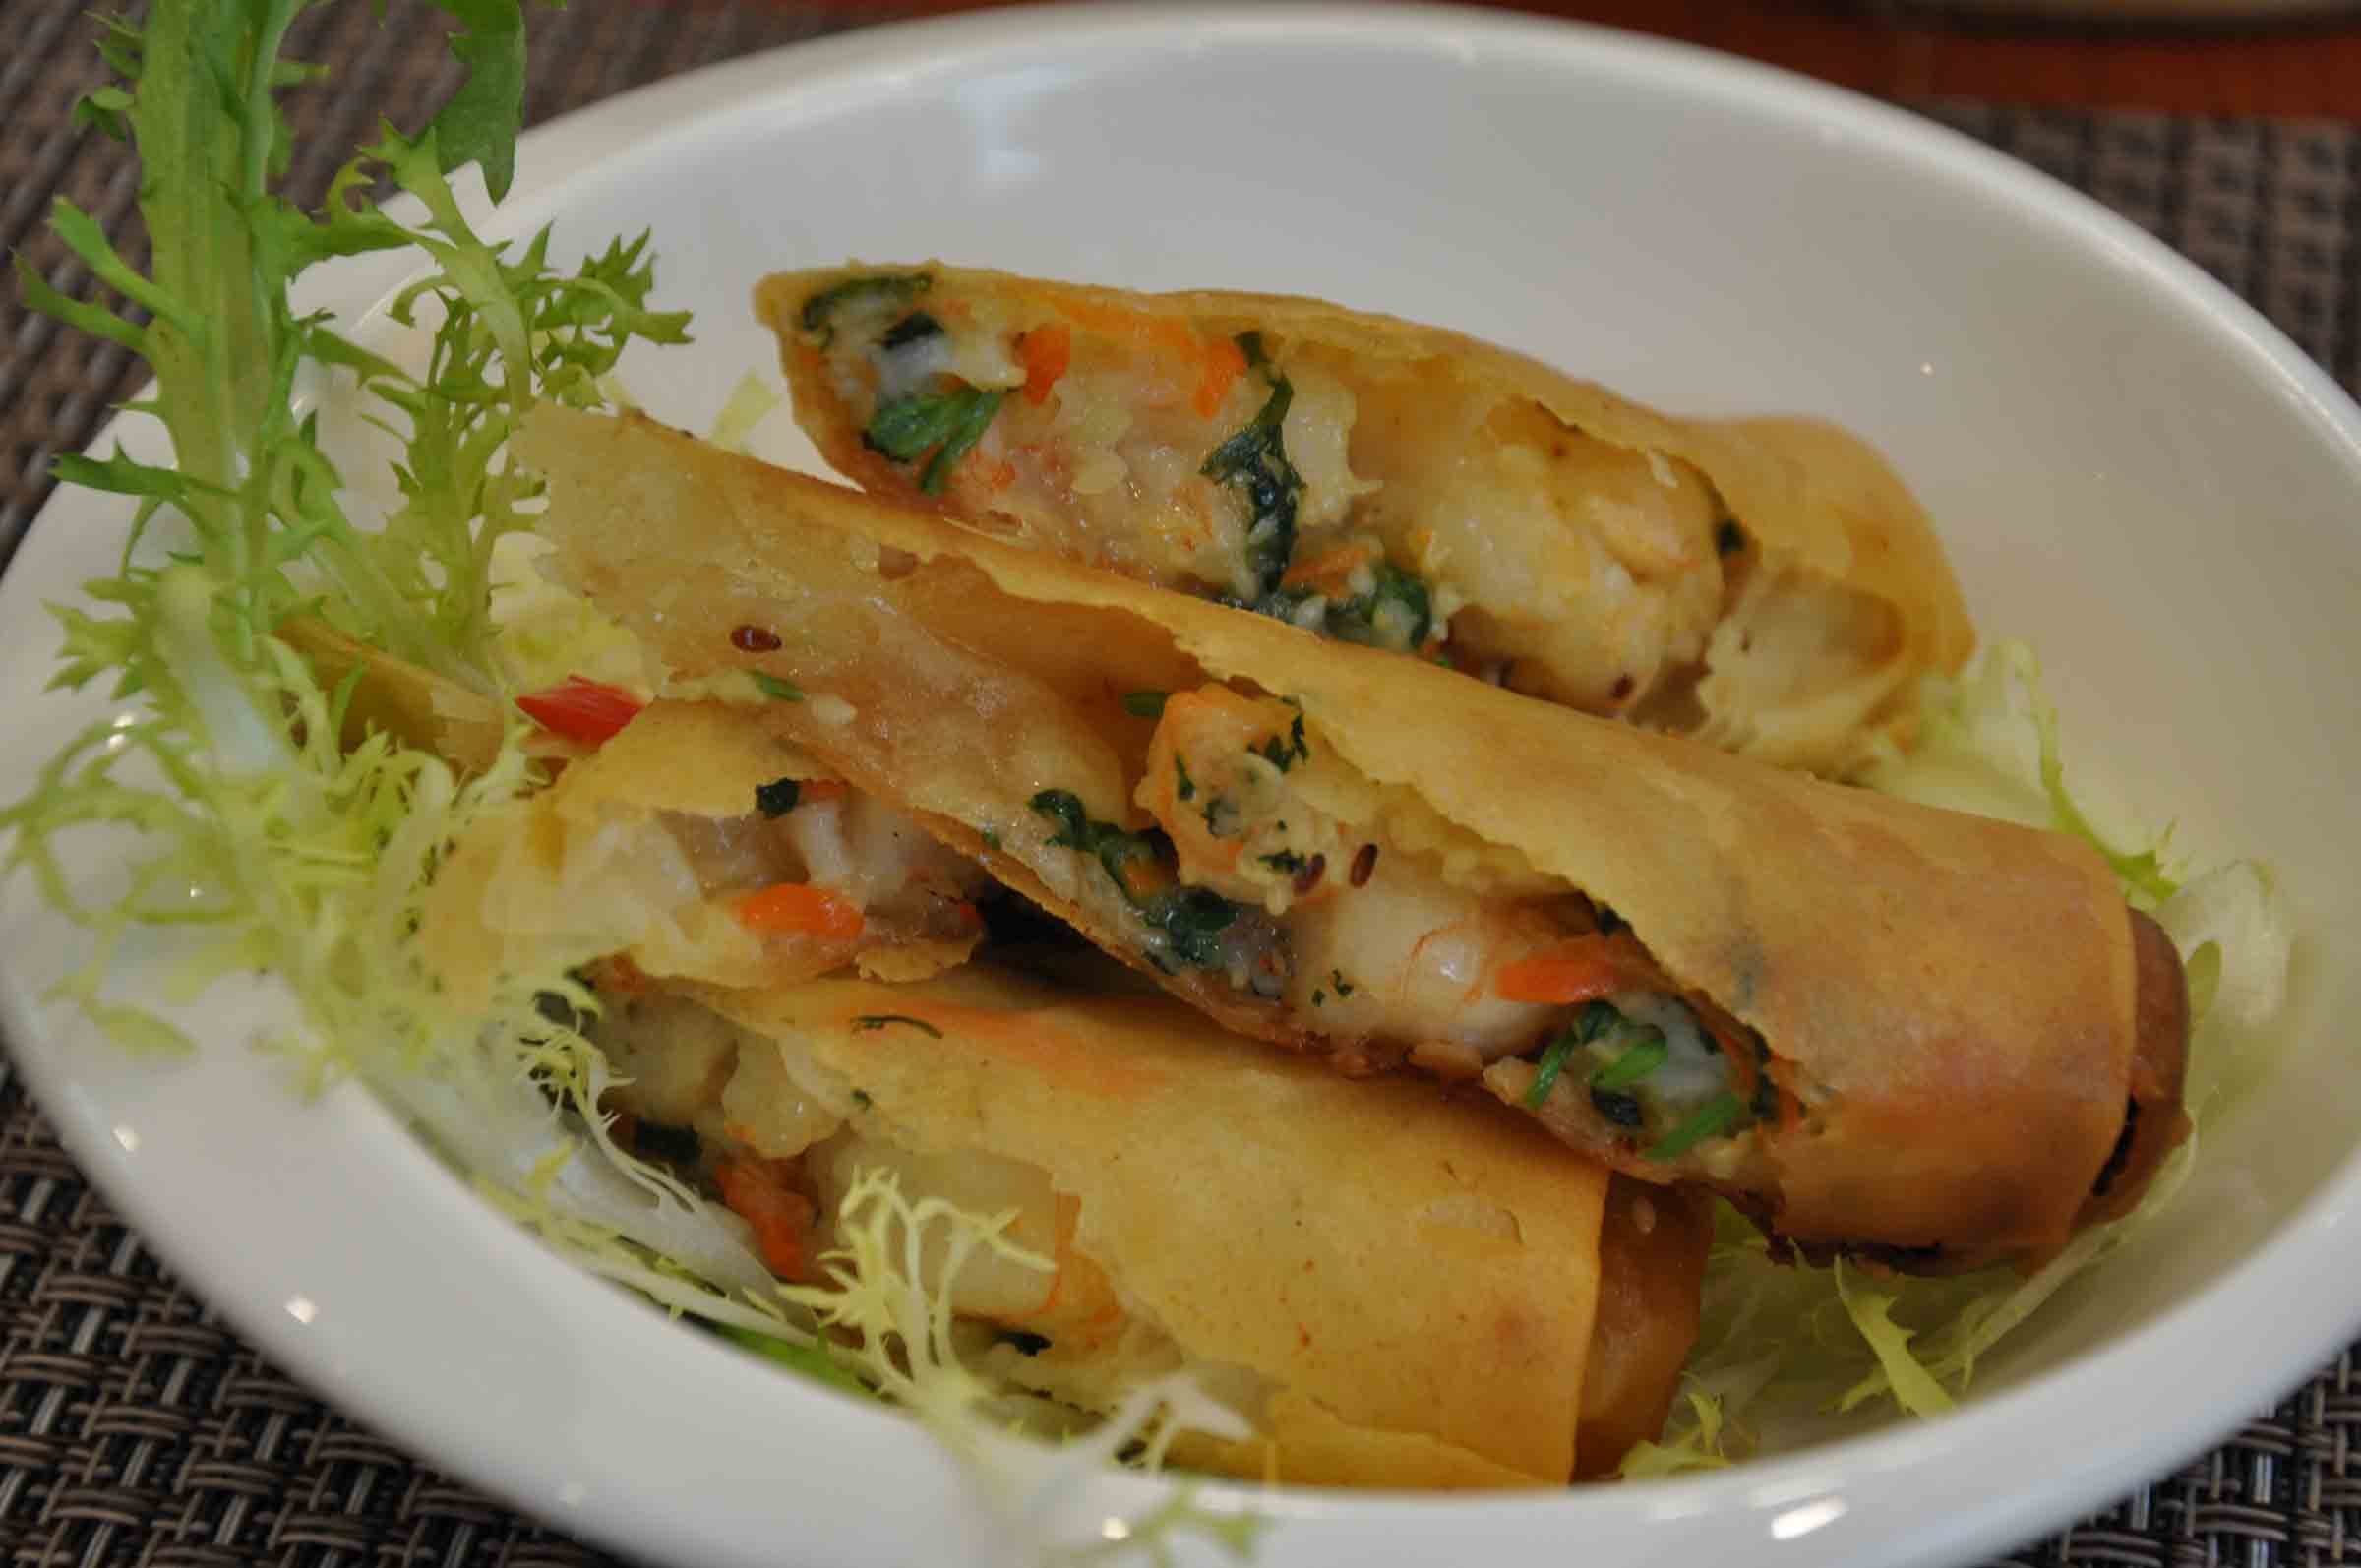 Best Macau Restaurants: Shrimp Rolls at Campo De Dragon